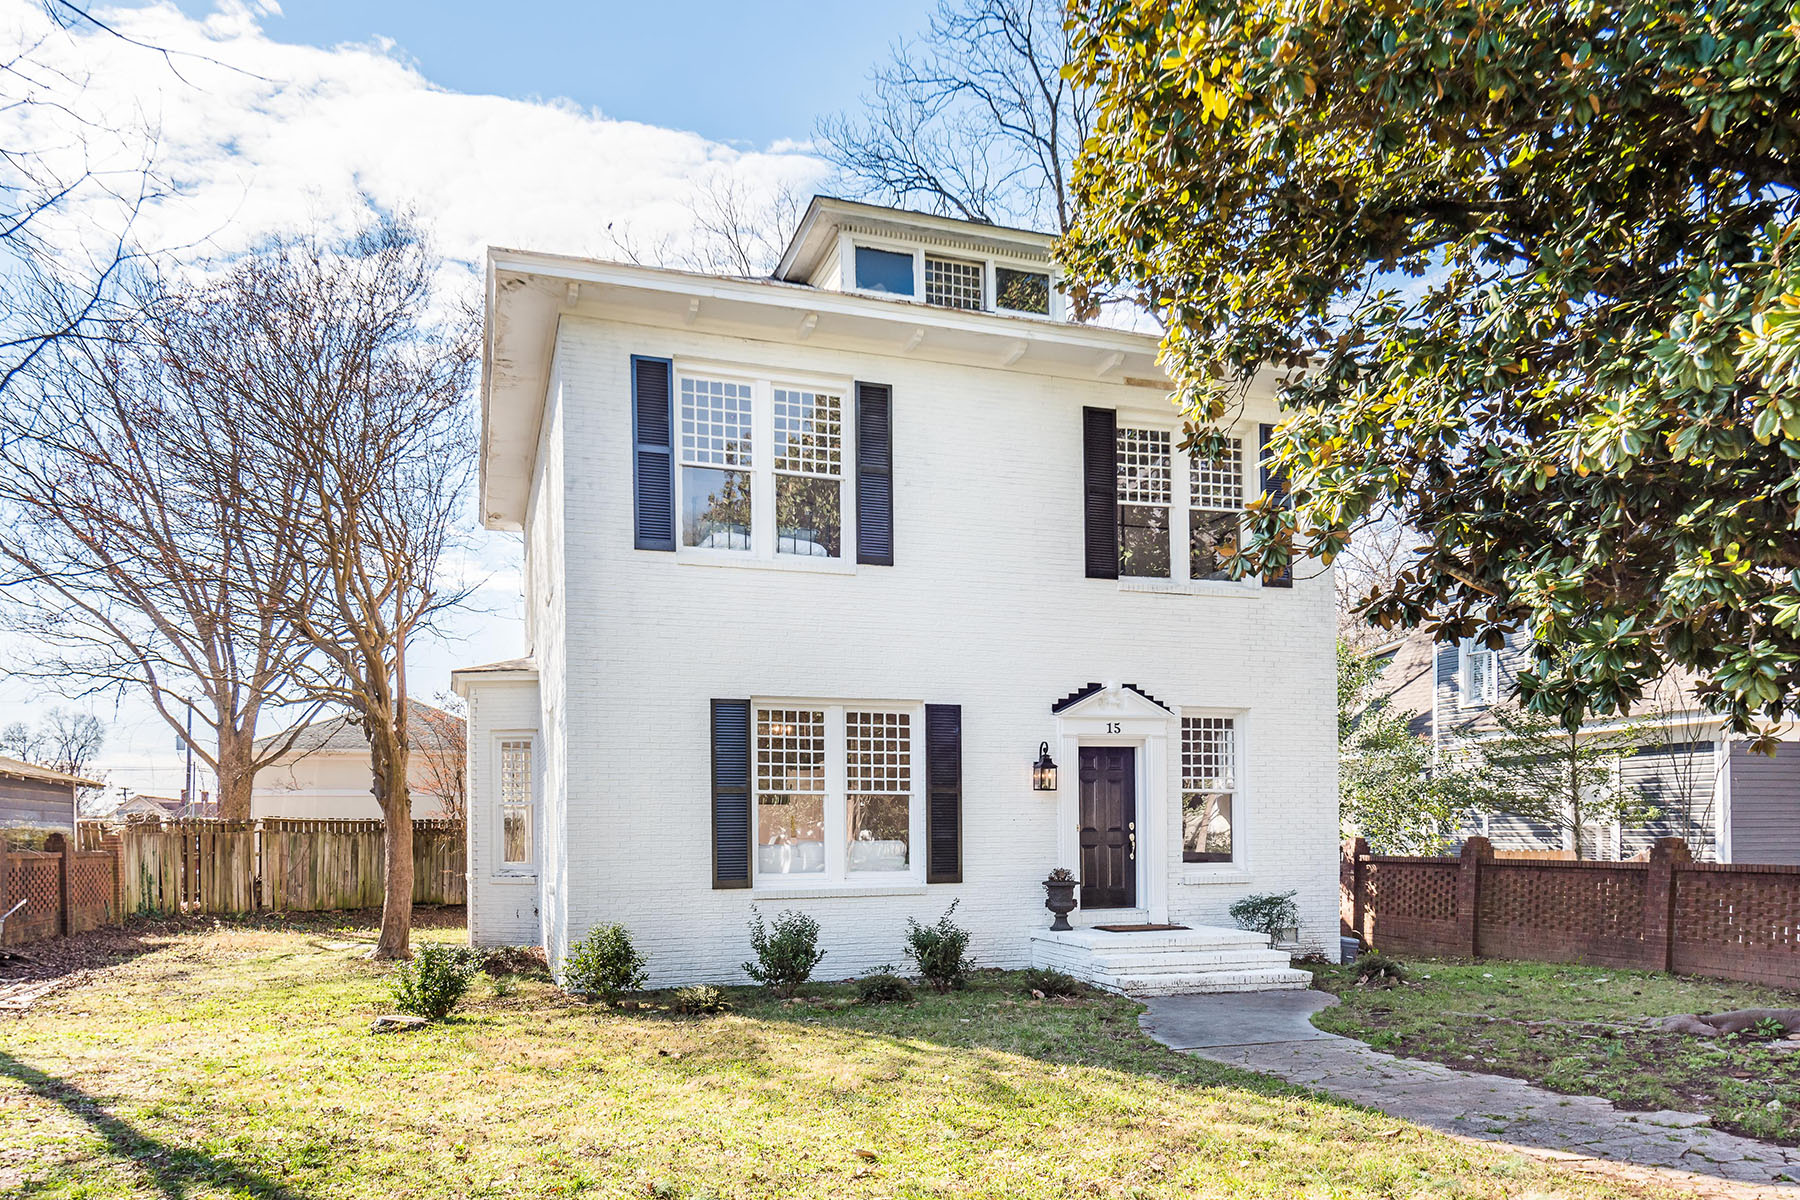 Single Family Homes for Sale at HISTORIC DISTRICT 15 Georgia St Concord, North Carolina 28025 United States